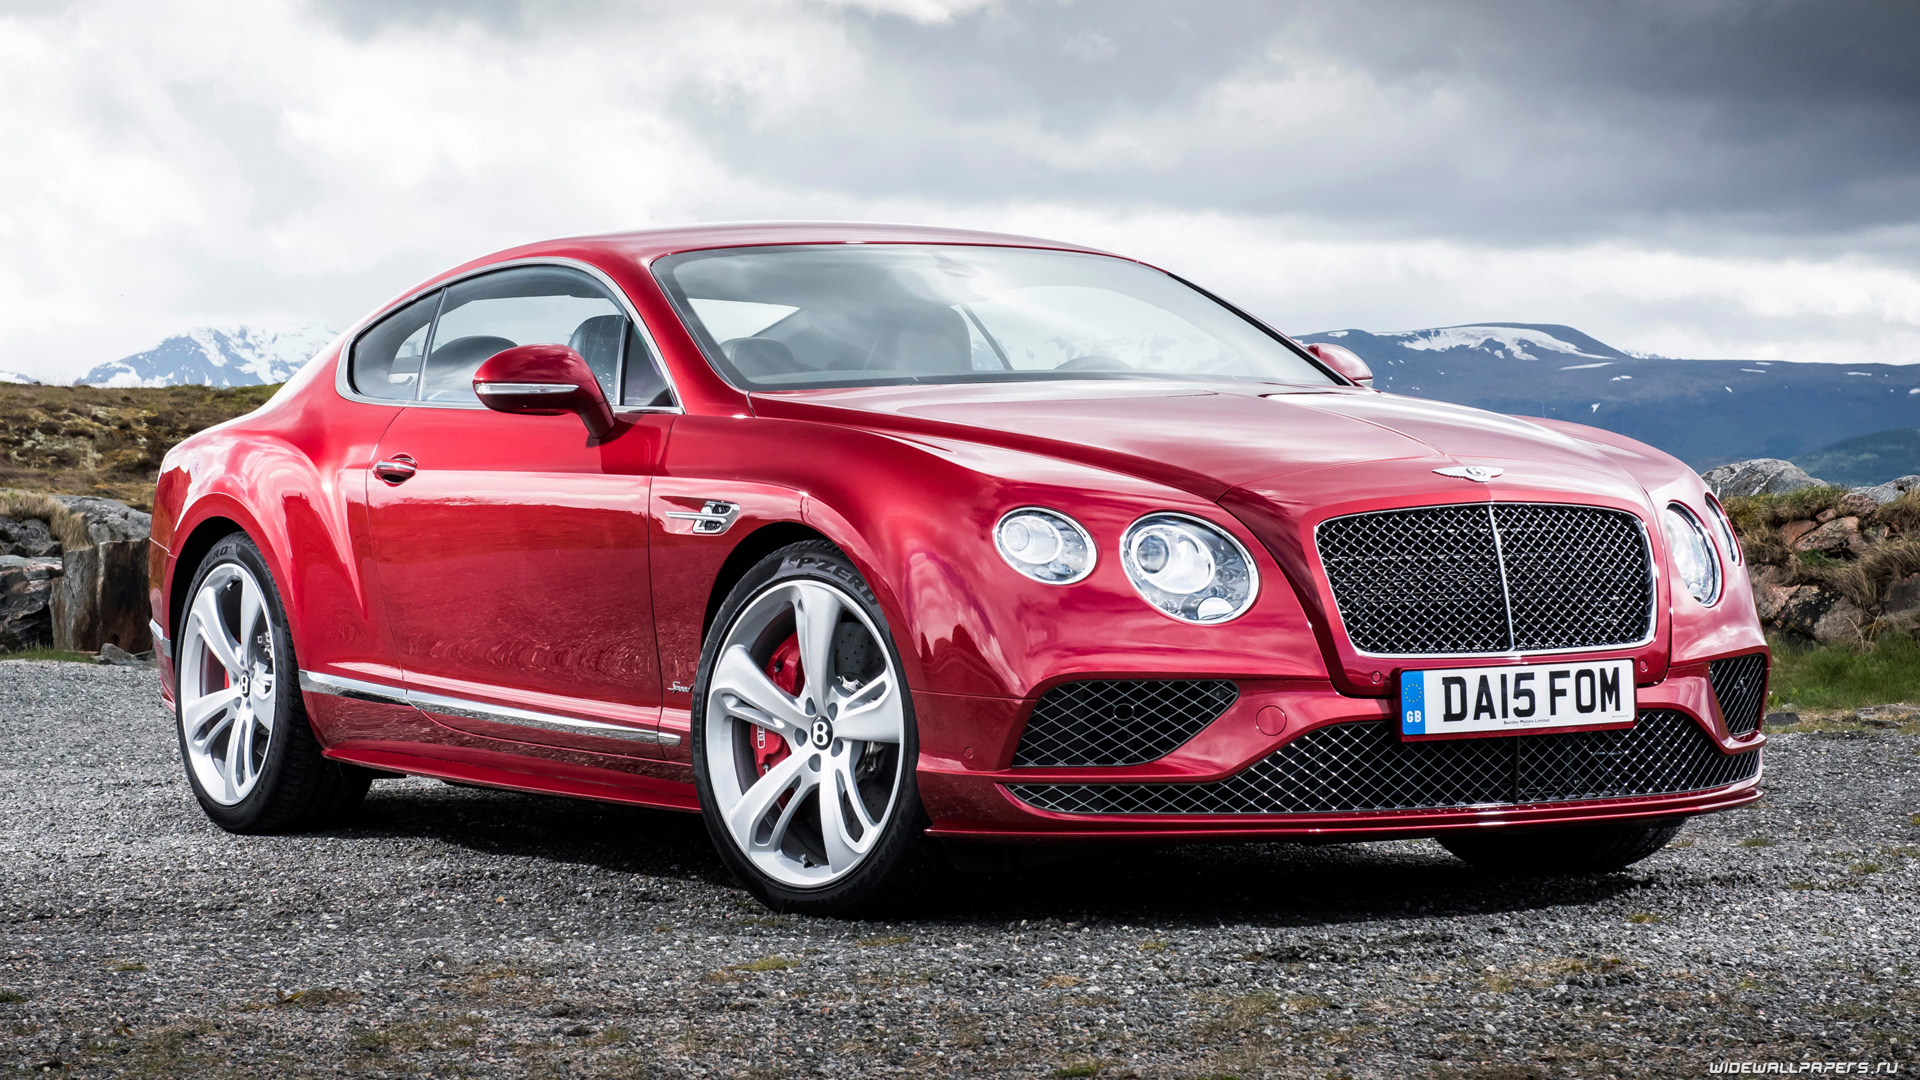 171 Bentley Continental Gt Speed 2015 1920x1080 006 Jpg 1920